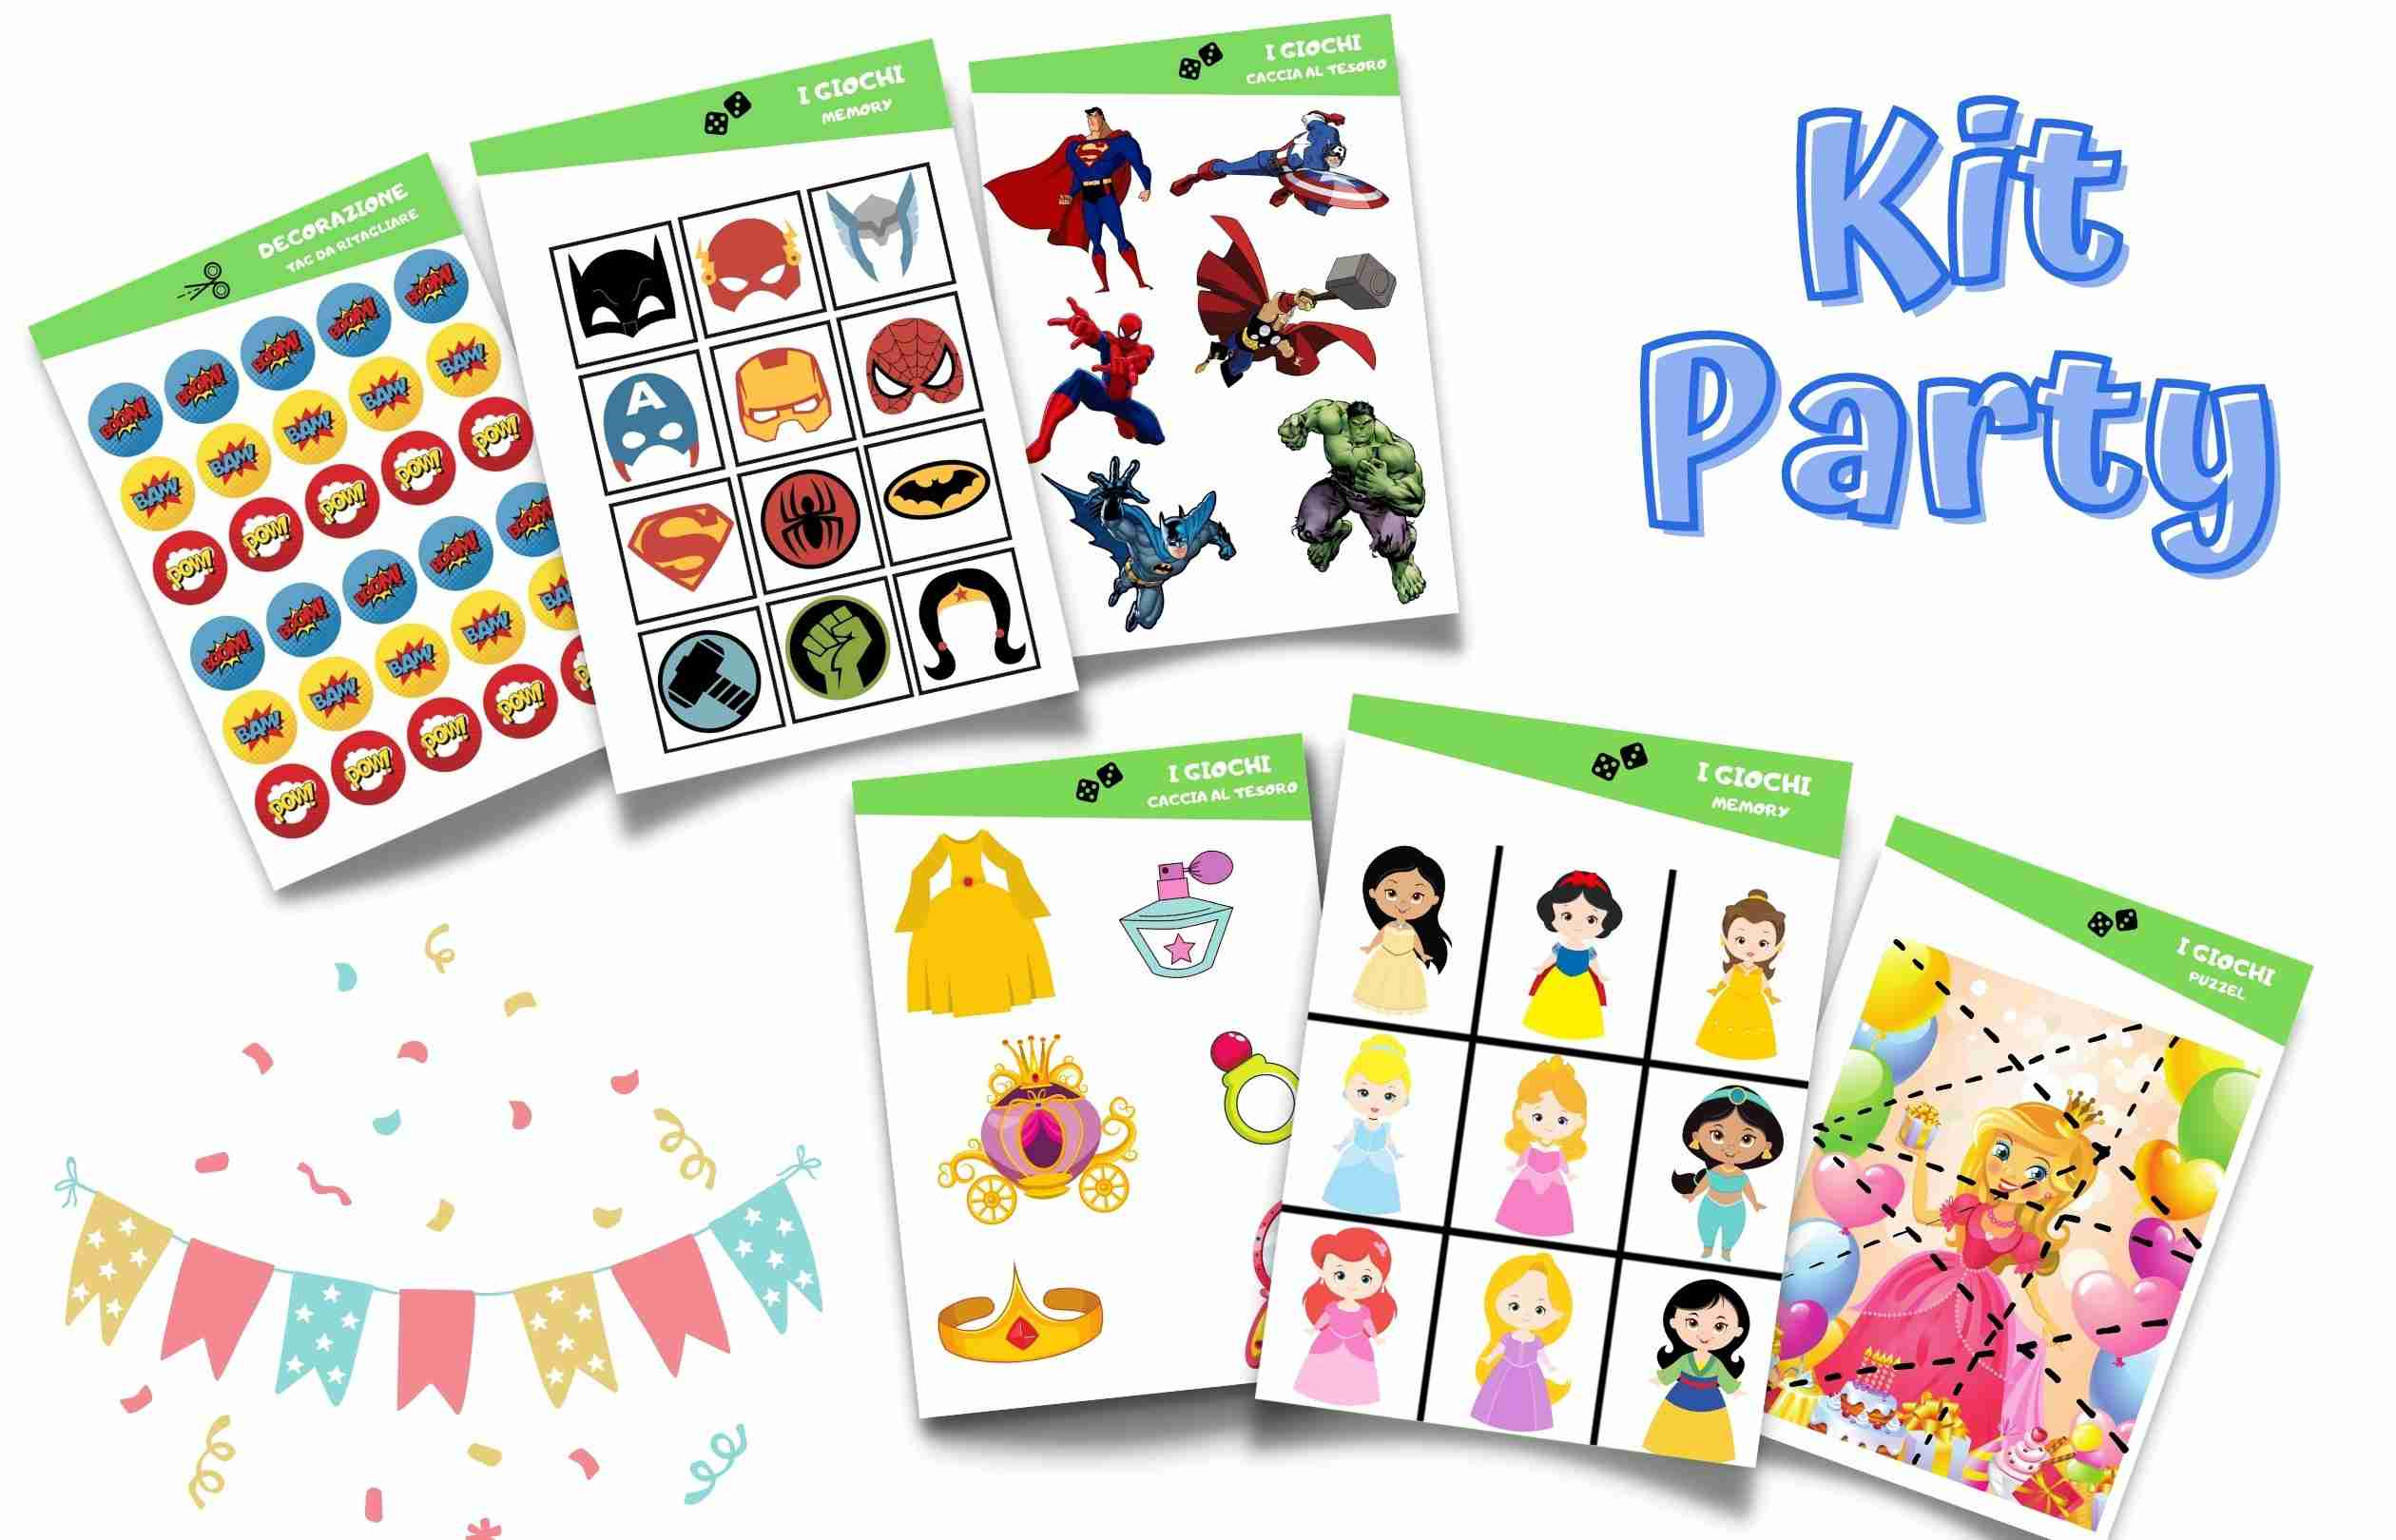 Kit-party-copertina-blog